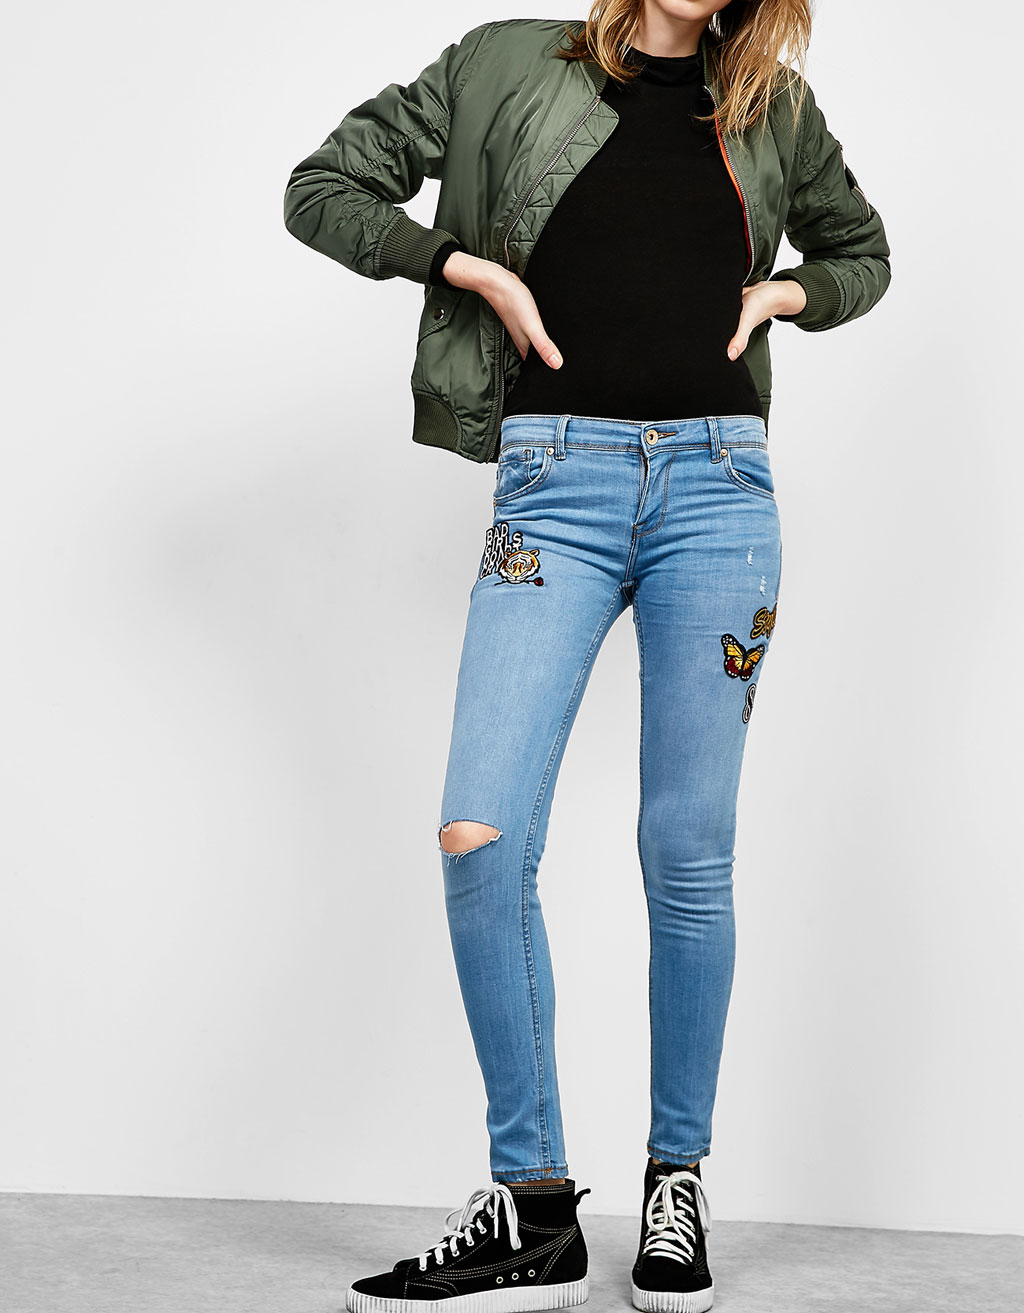 Low waist skinny jeans with floral patches